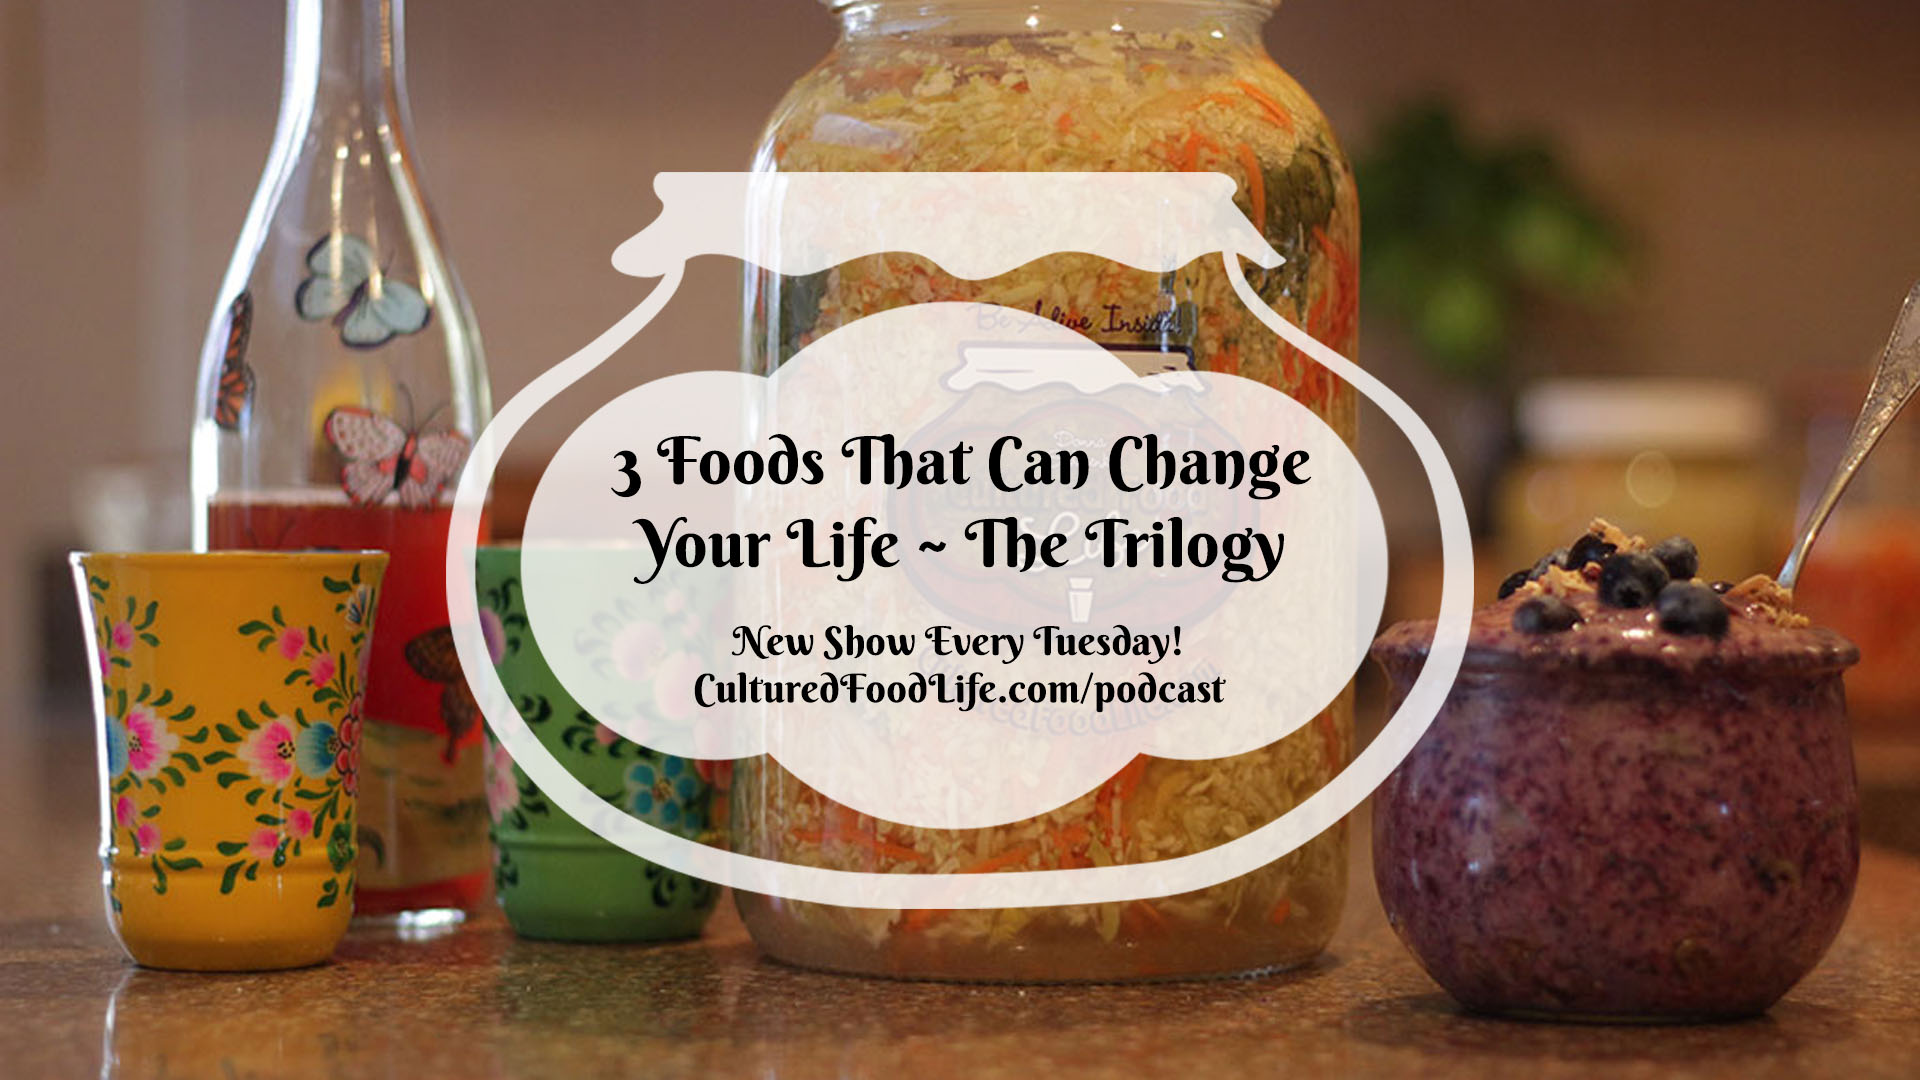 3 Foods That Can Change Your Life The Trilogy full